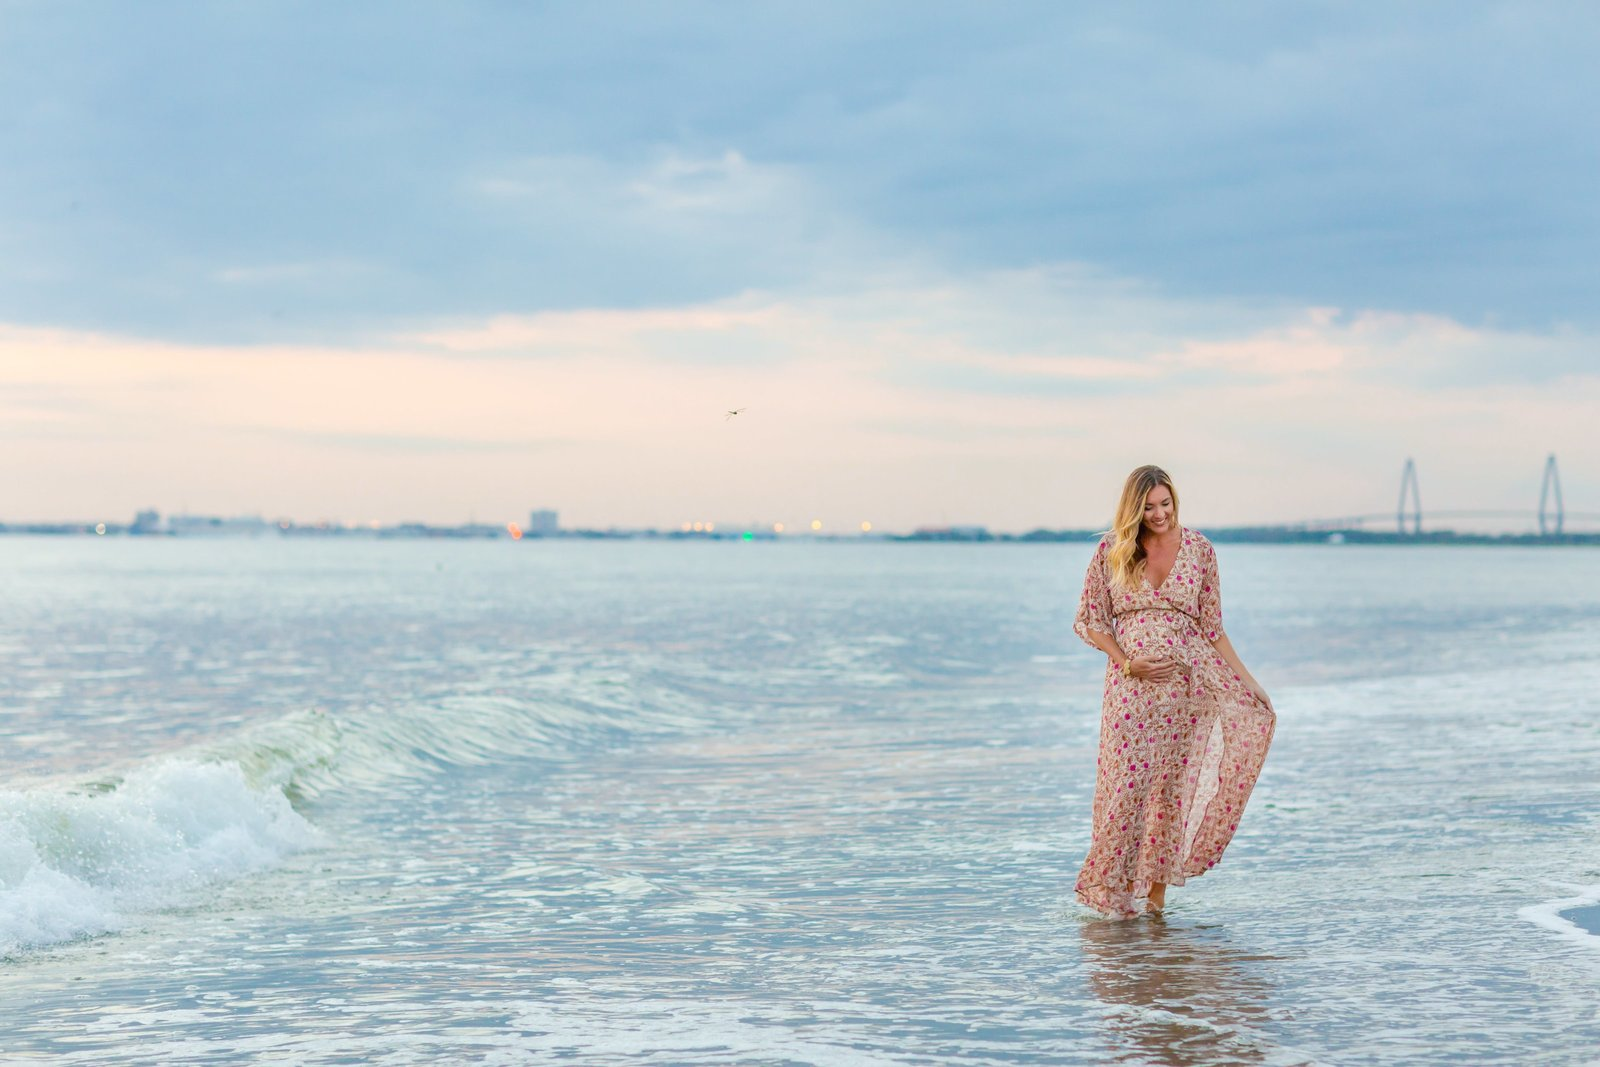 Corin-maternity-photos-isle-of-palms-south-carolina-13-min